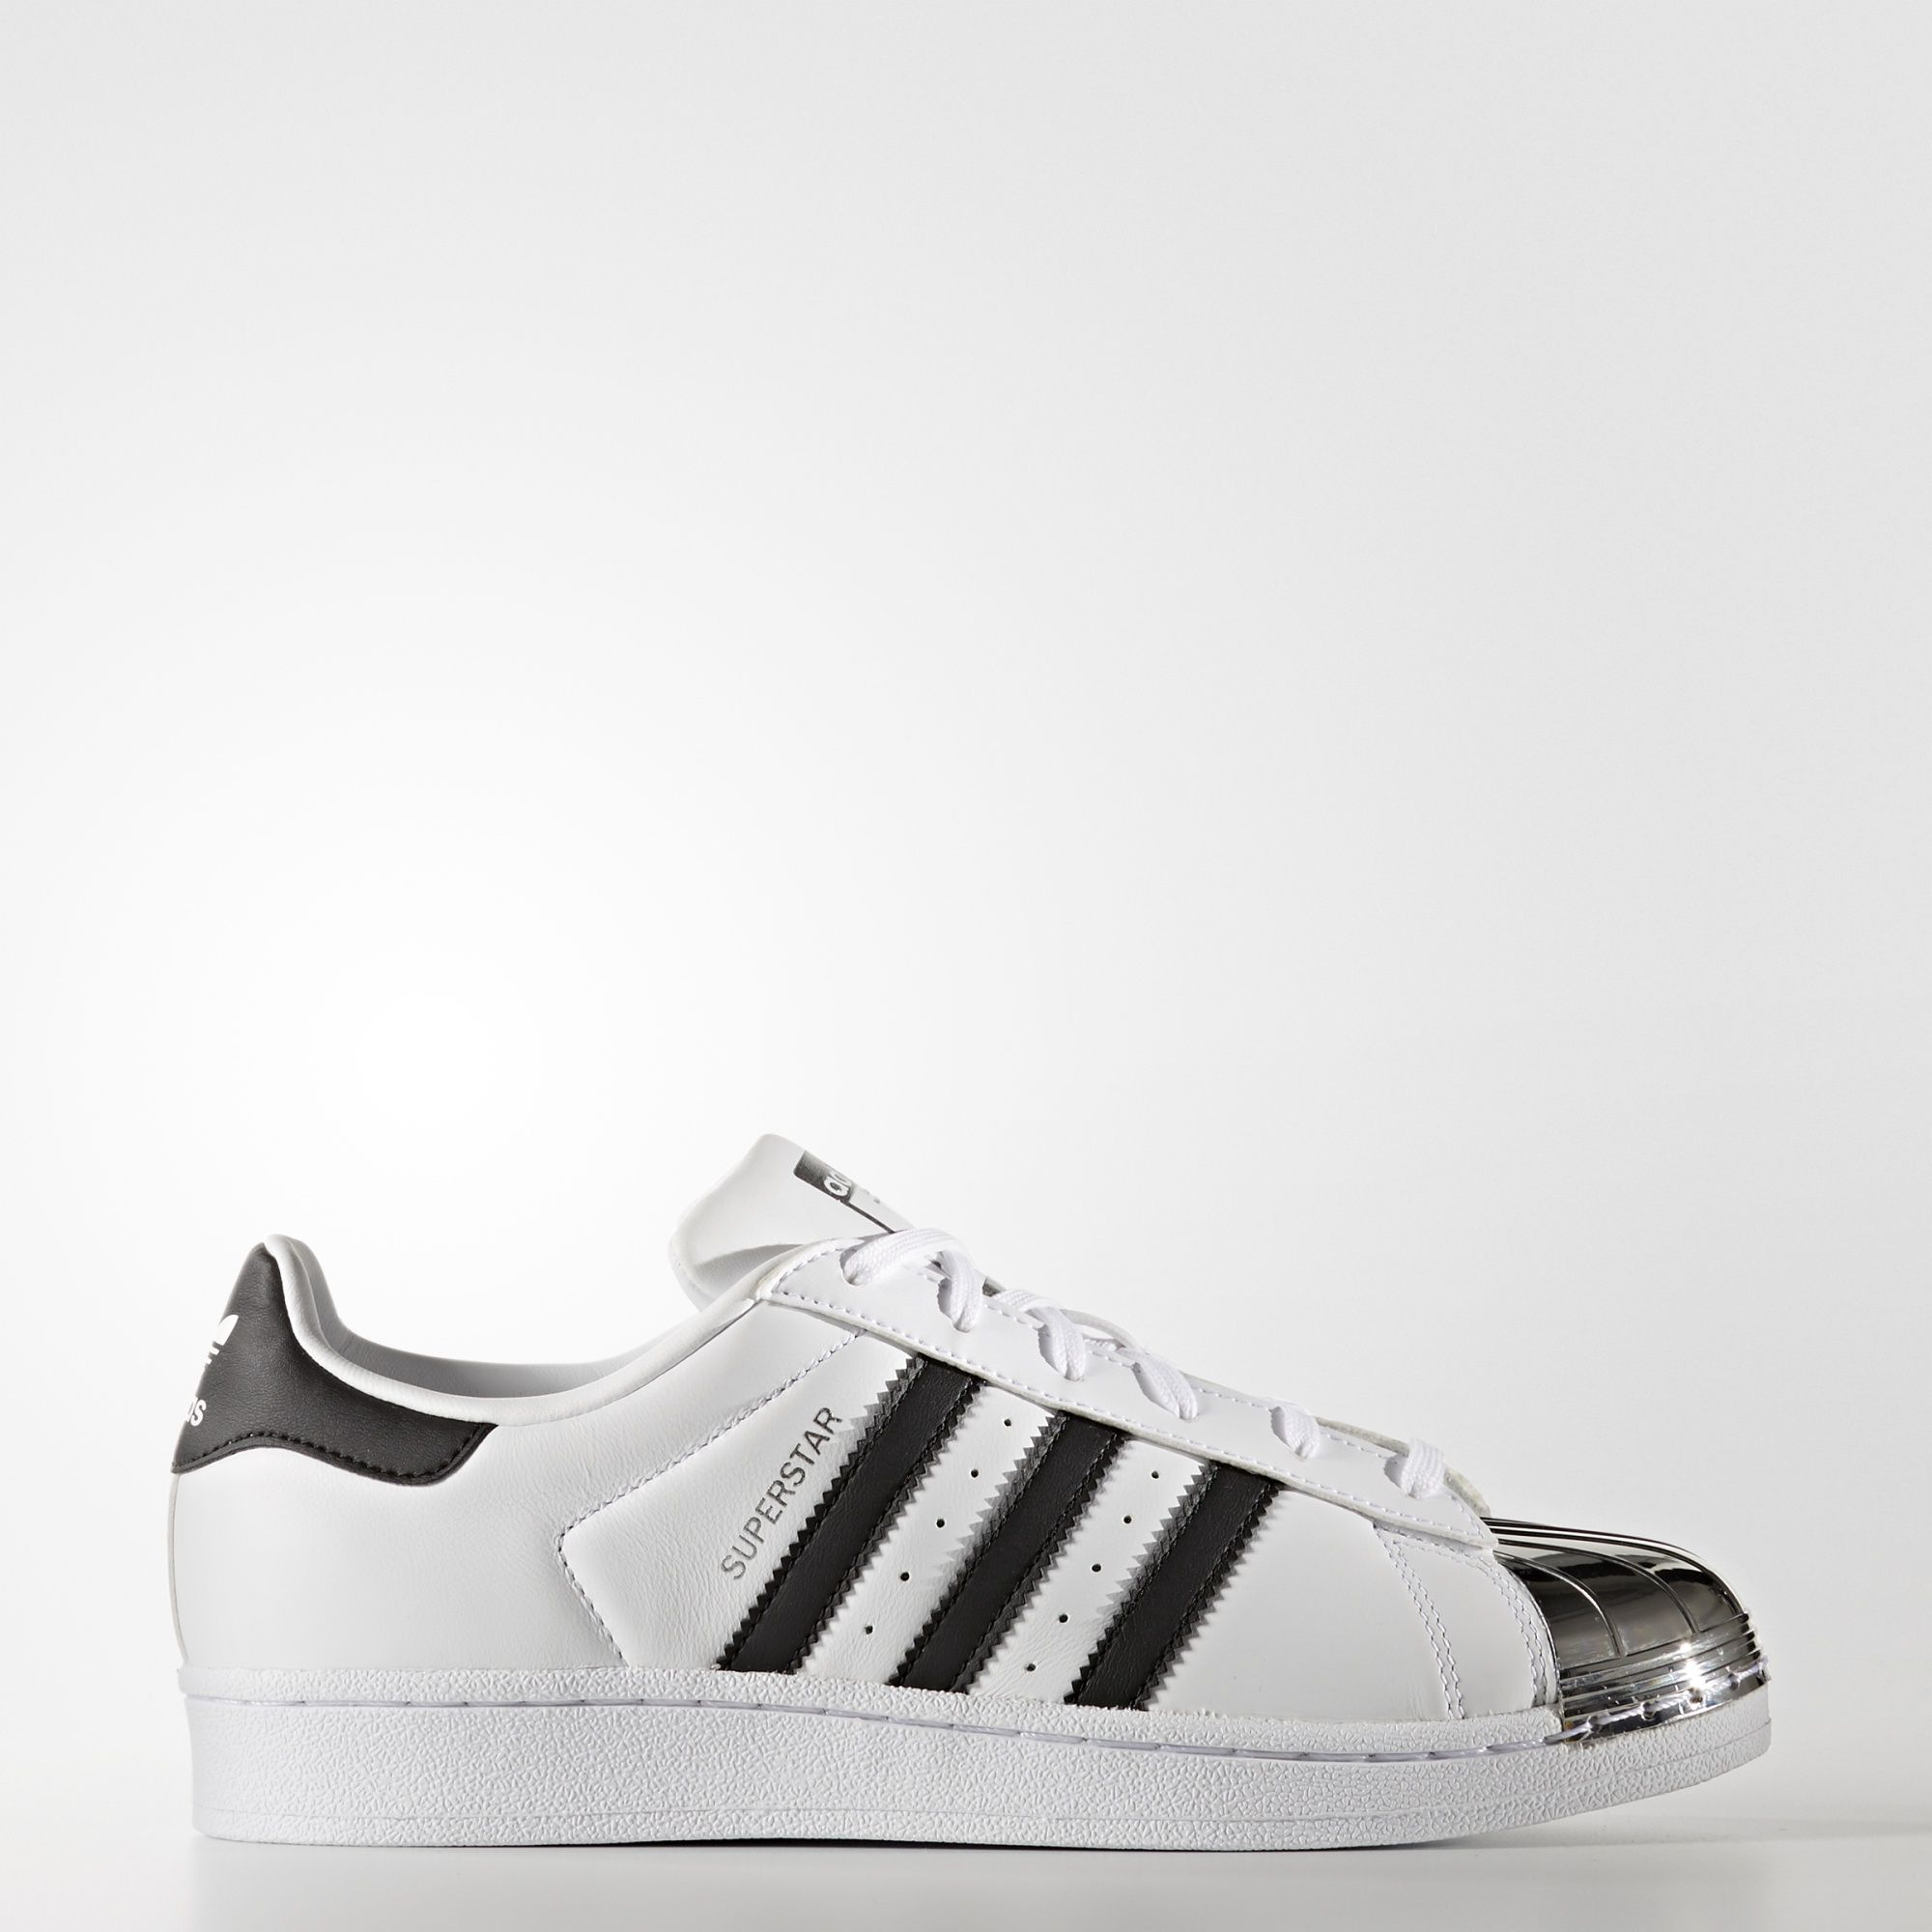 Adidas Originals Mens Superstar 2 Trainers Retro Style Shoes